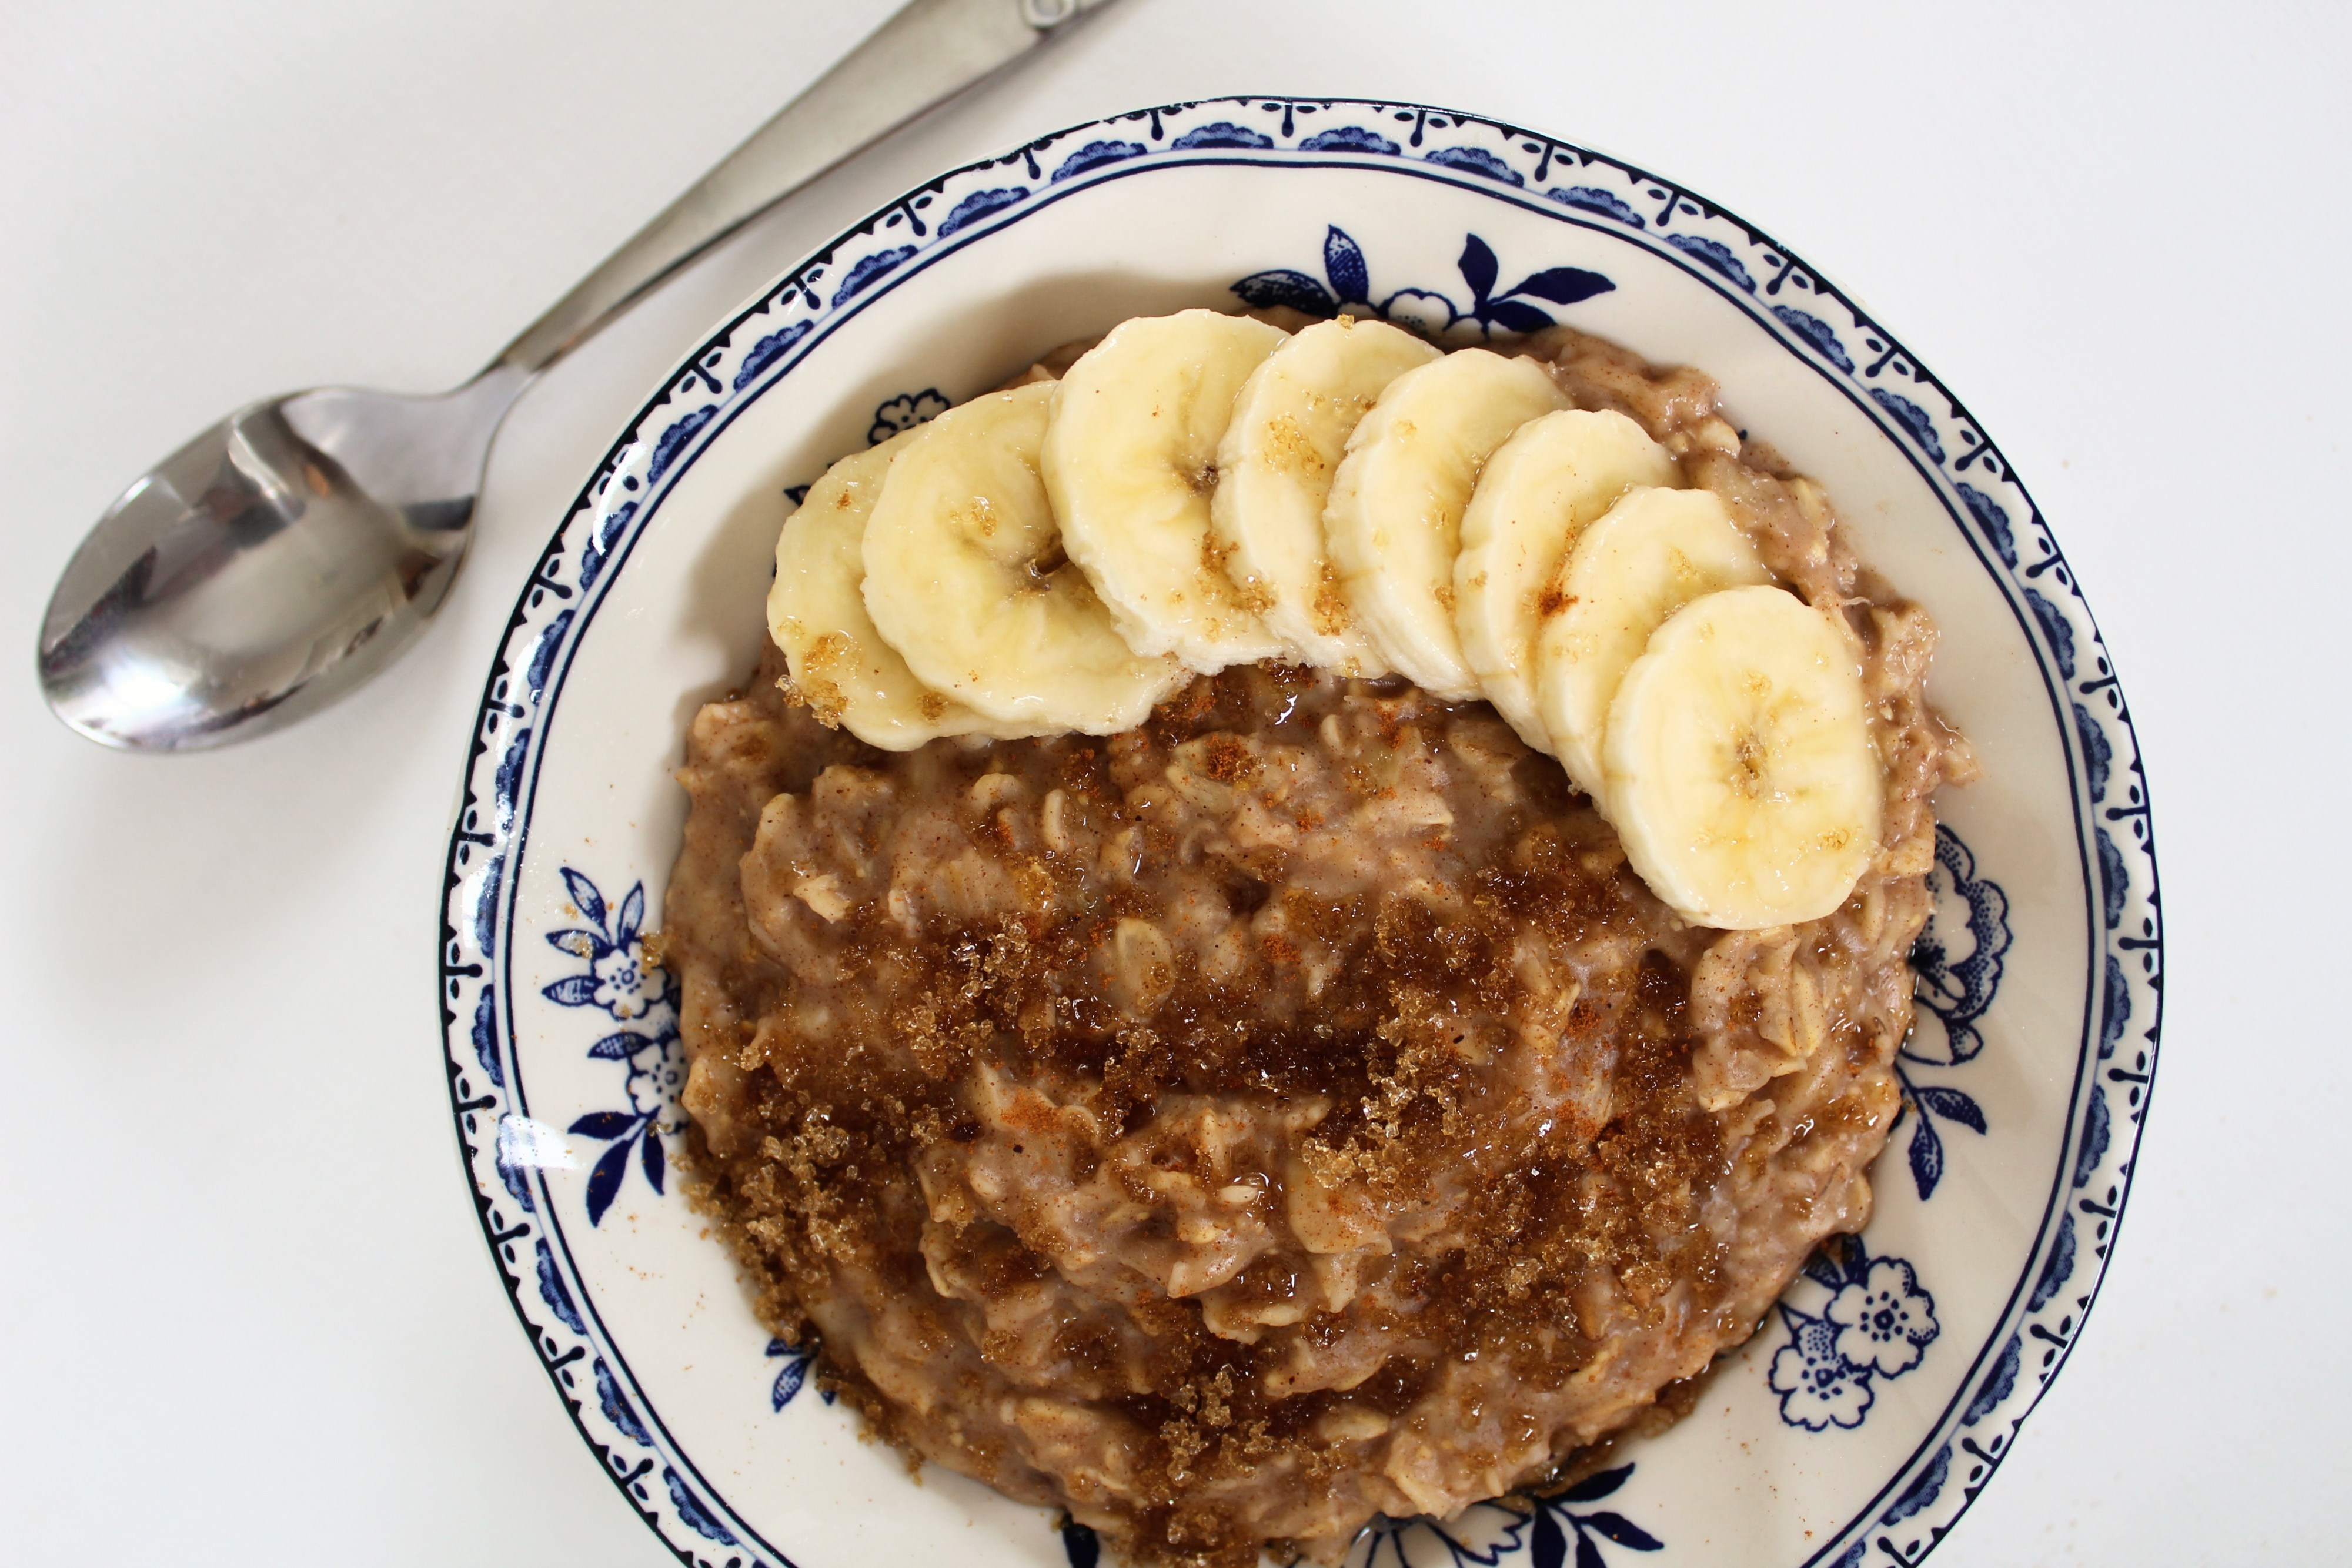 The warm & comforting flavors of banana bread make an easy breakfast in this creamy bowl of low-sugar banana bread oatmeal, topped with sliced bananas, cinnamon, and just a pinch of brown sugar.